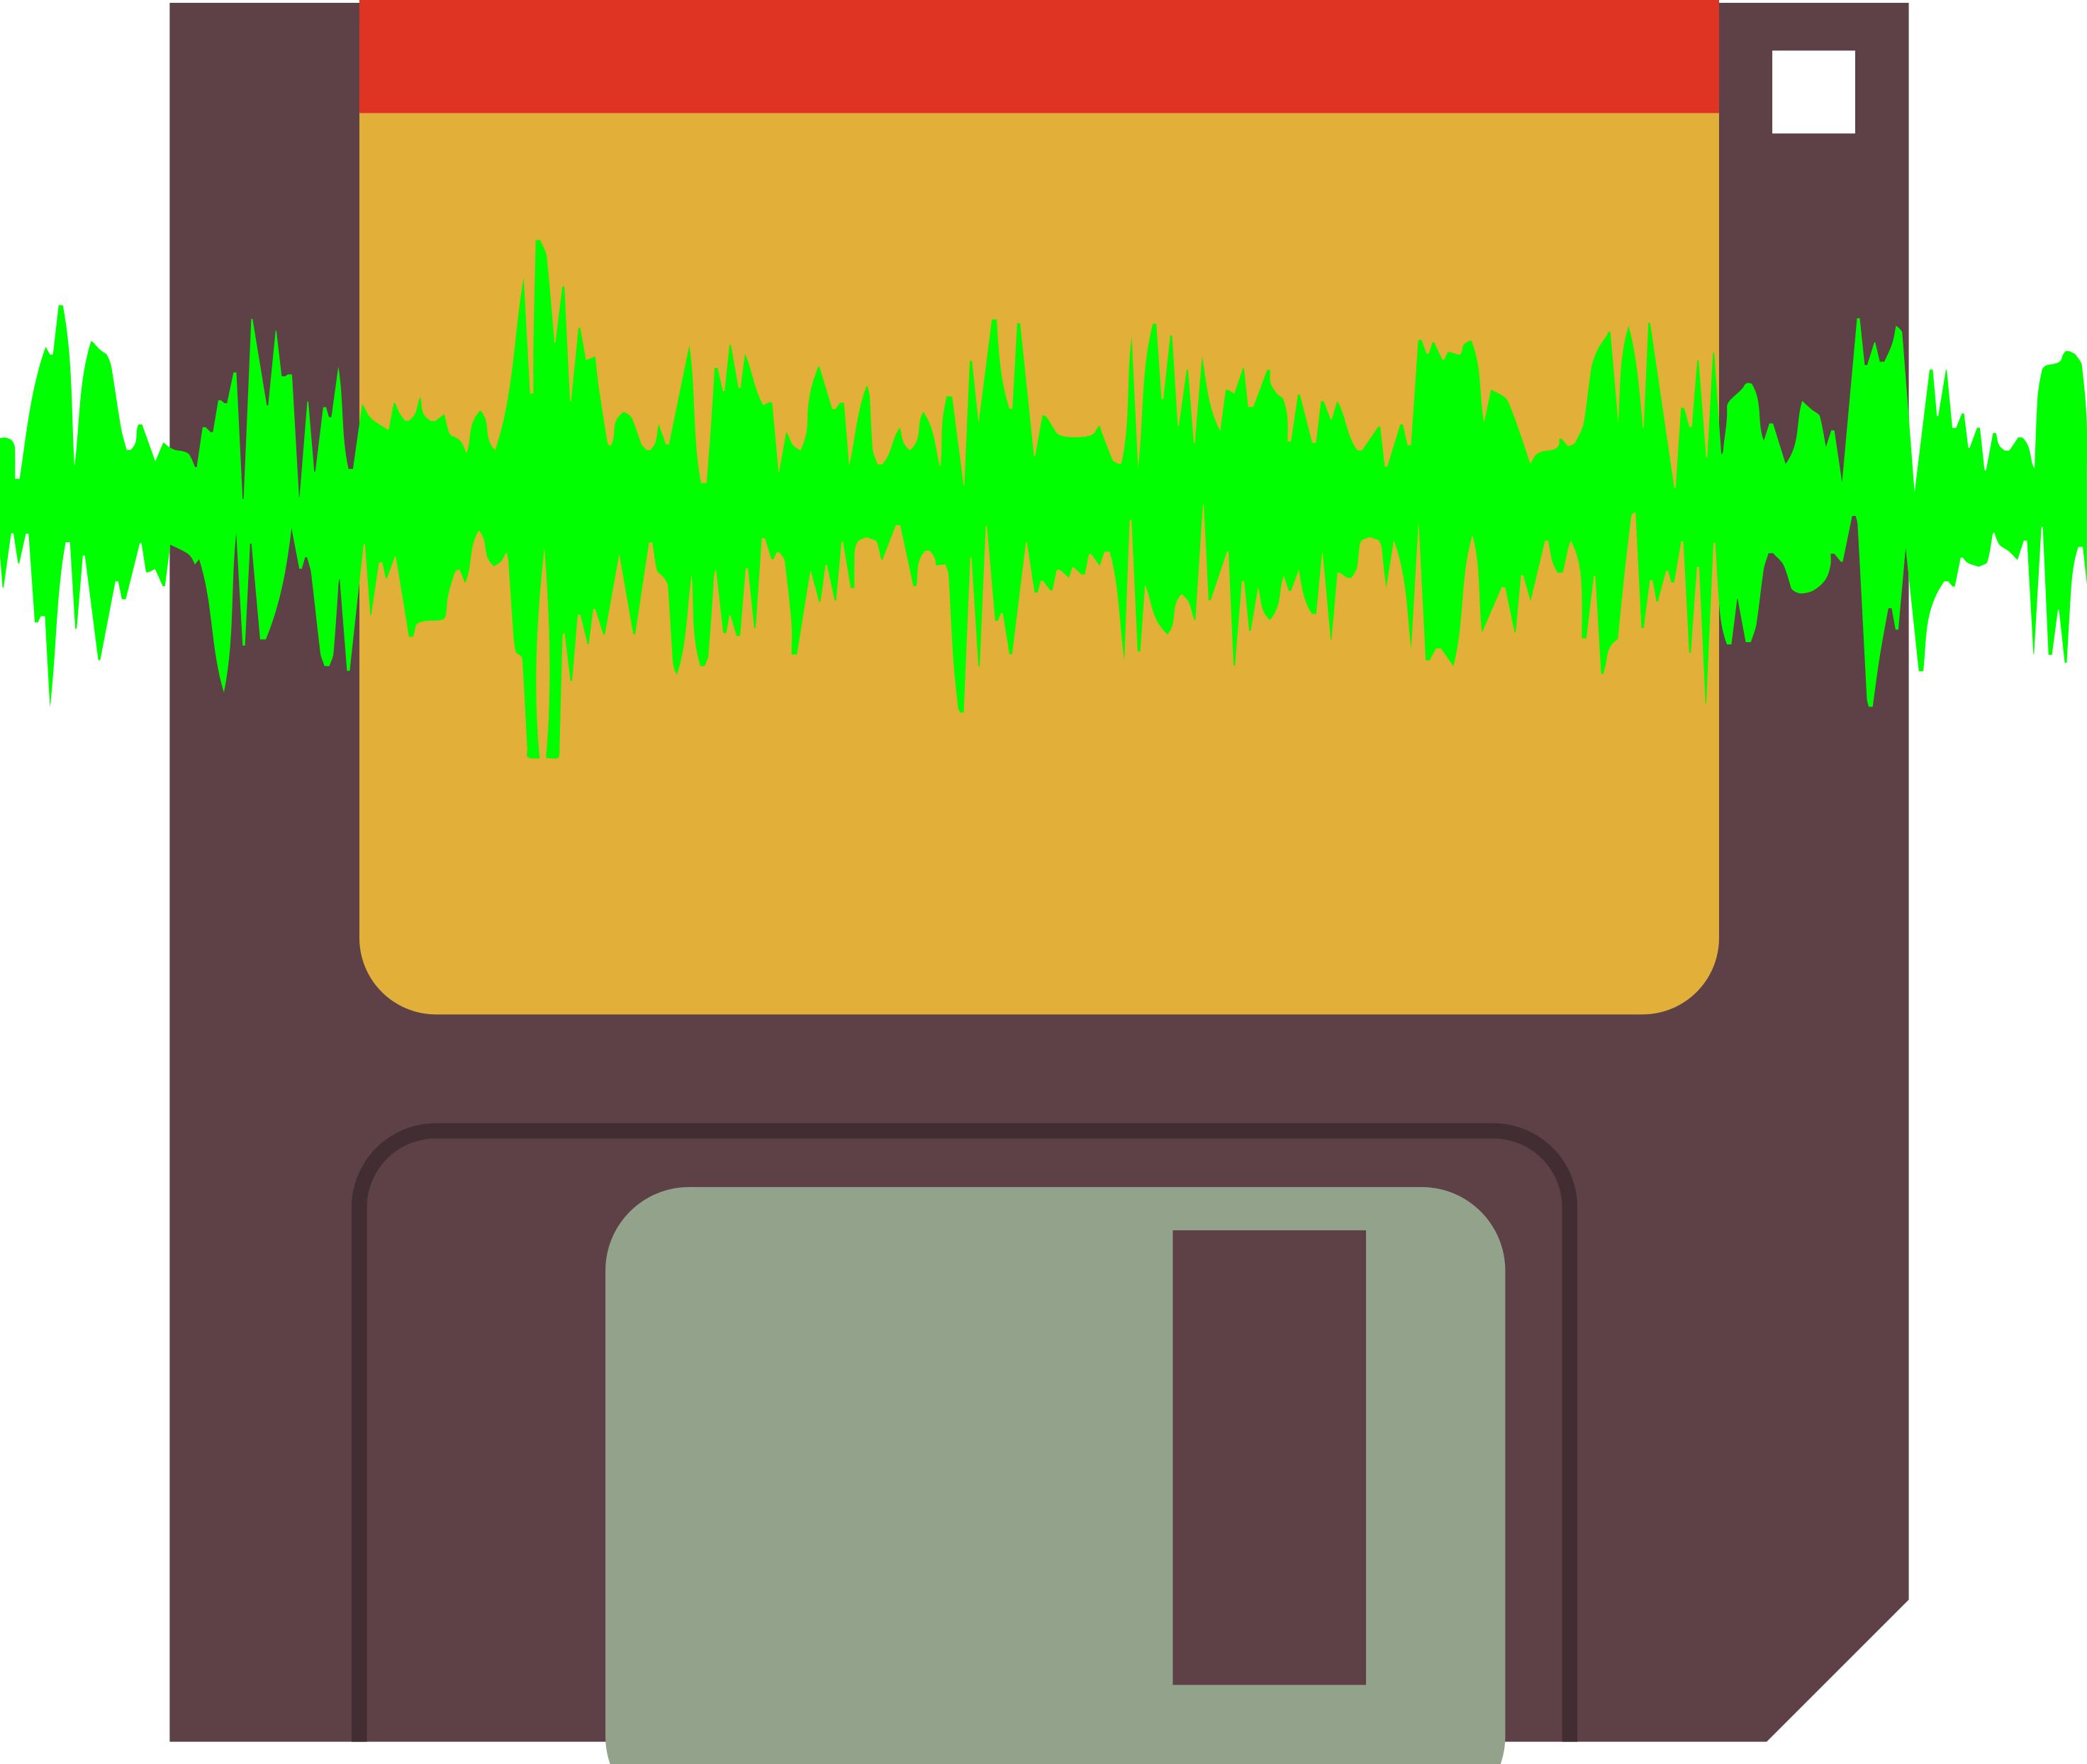 /how-i-compressed-each-podcast-episode-to-less-than-a-floppy-disks-144-mb-limit-pv493ew8 feature image